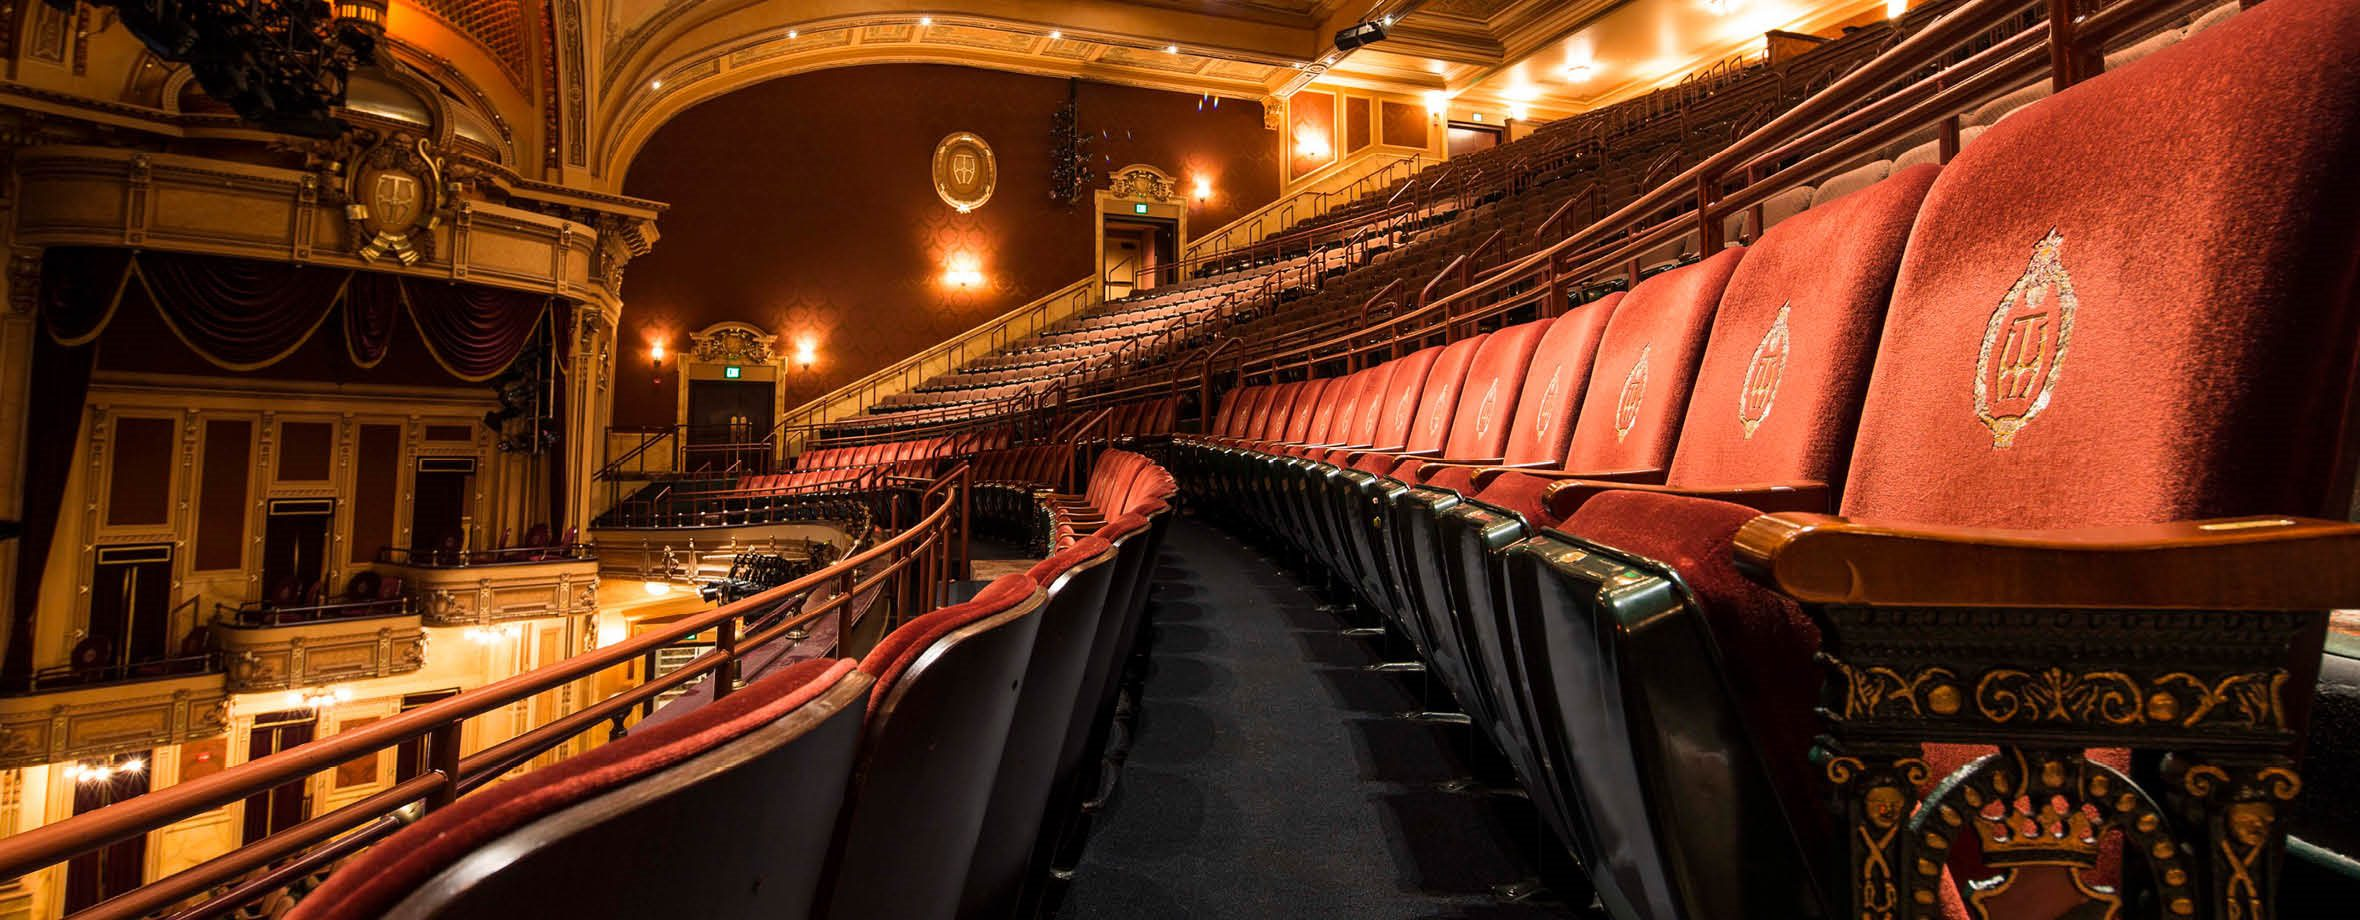 Hippordrome Theater in Baltimore